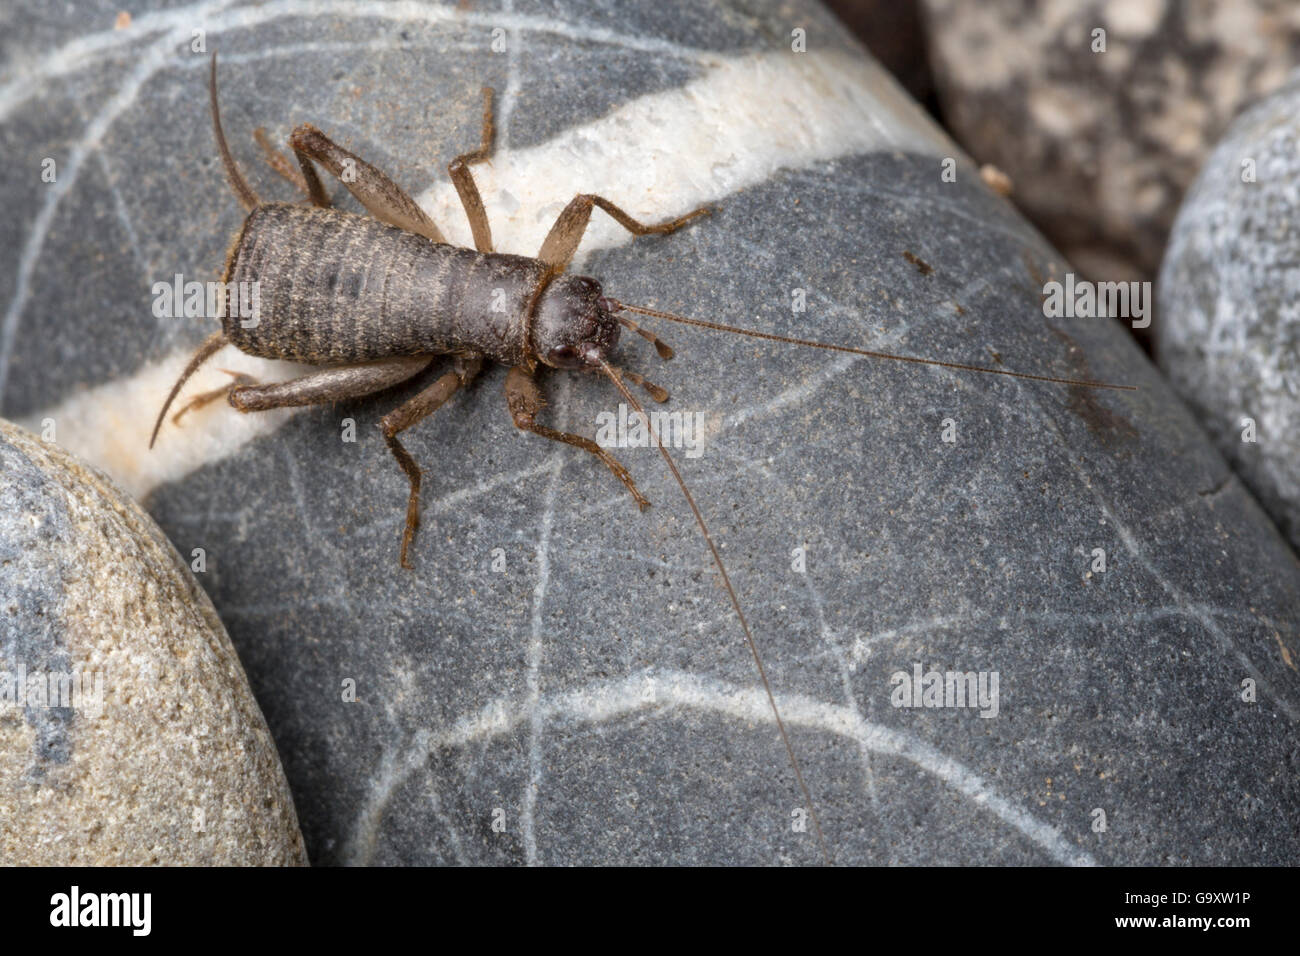 Scaly cricket  (Pseudomogoplistes vicentae) male amongst shingle. England, UK. Captive. - Stock Image